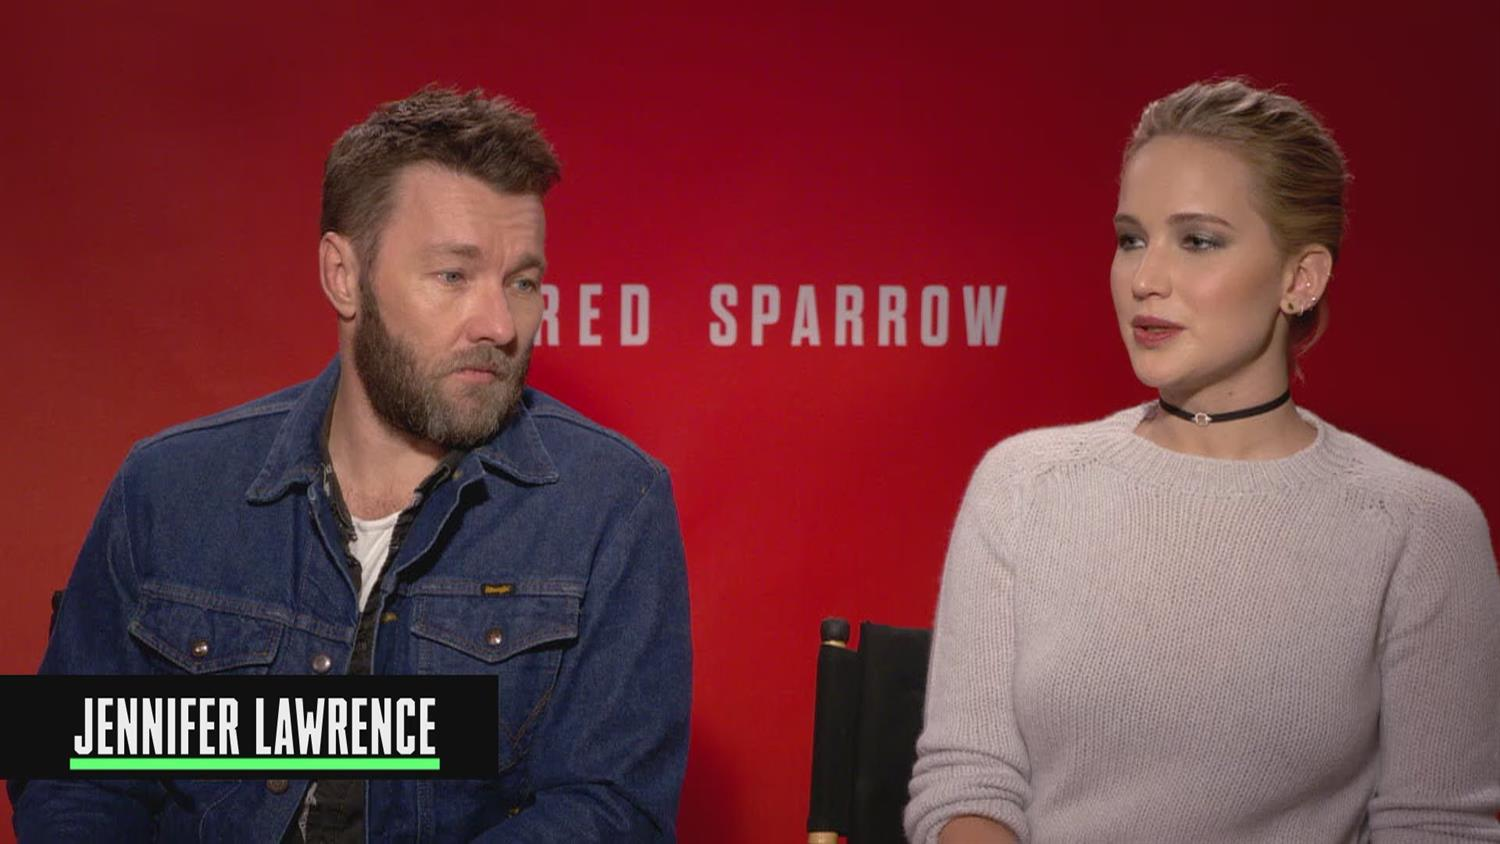 Jennifer Lawrence on Black Widow vs. Red Sparrow, Hunger Games and Vanderpump Rules as Sci-Fi